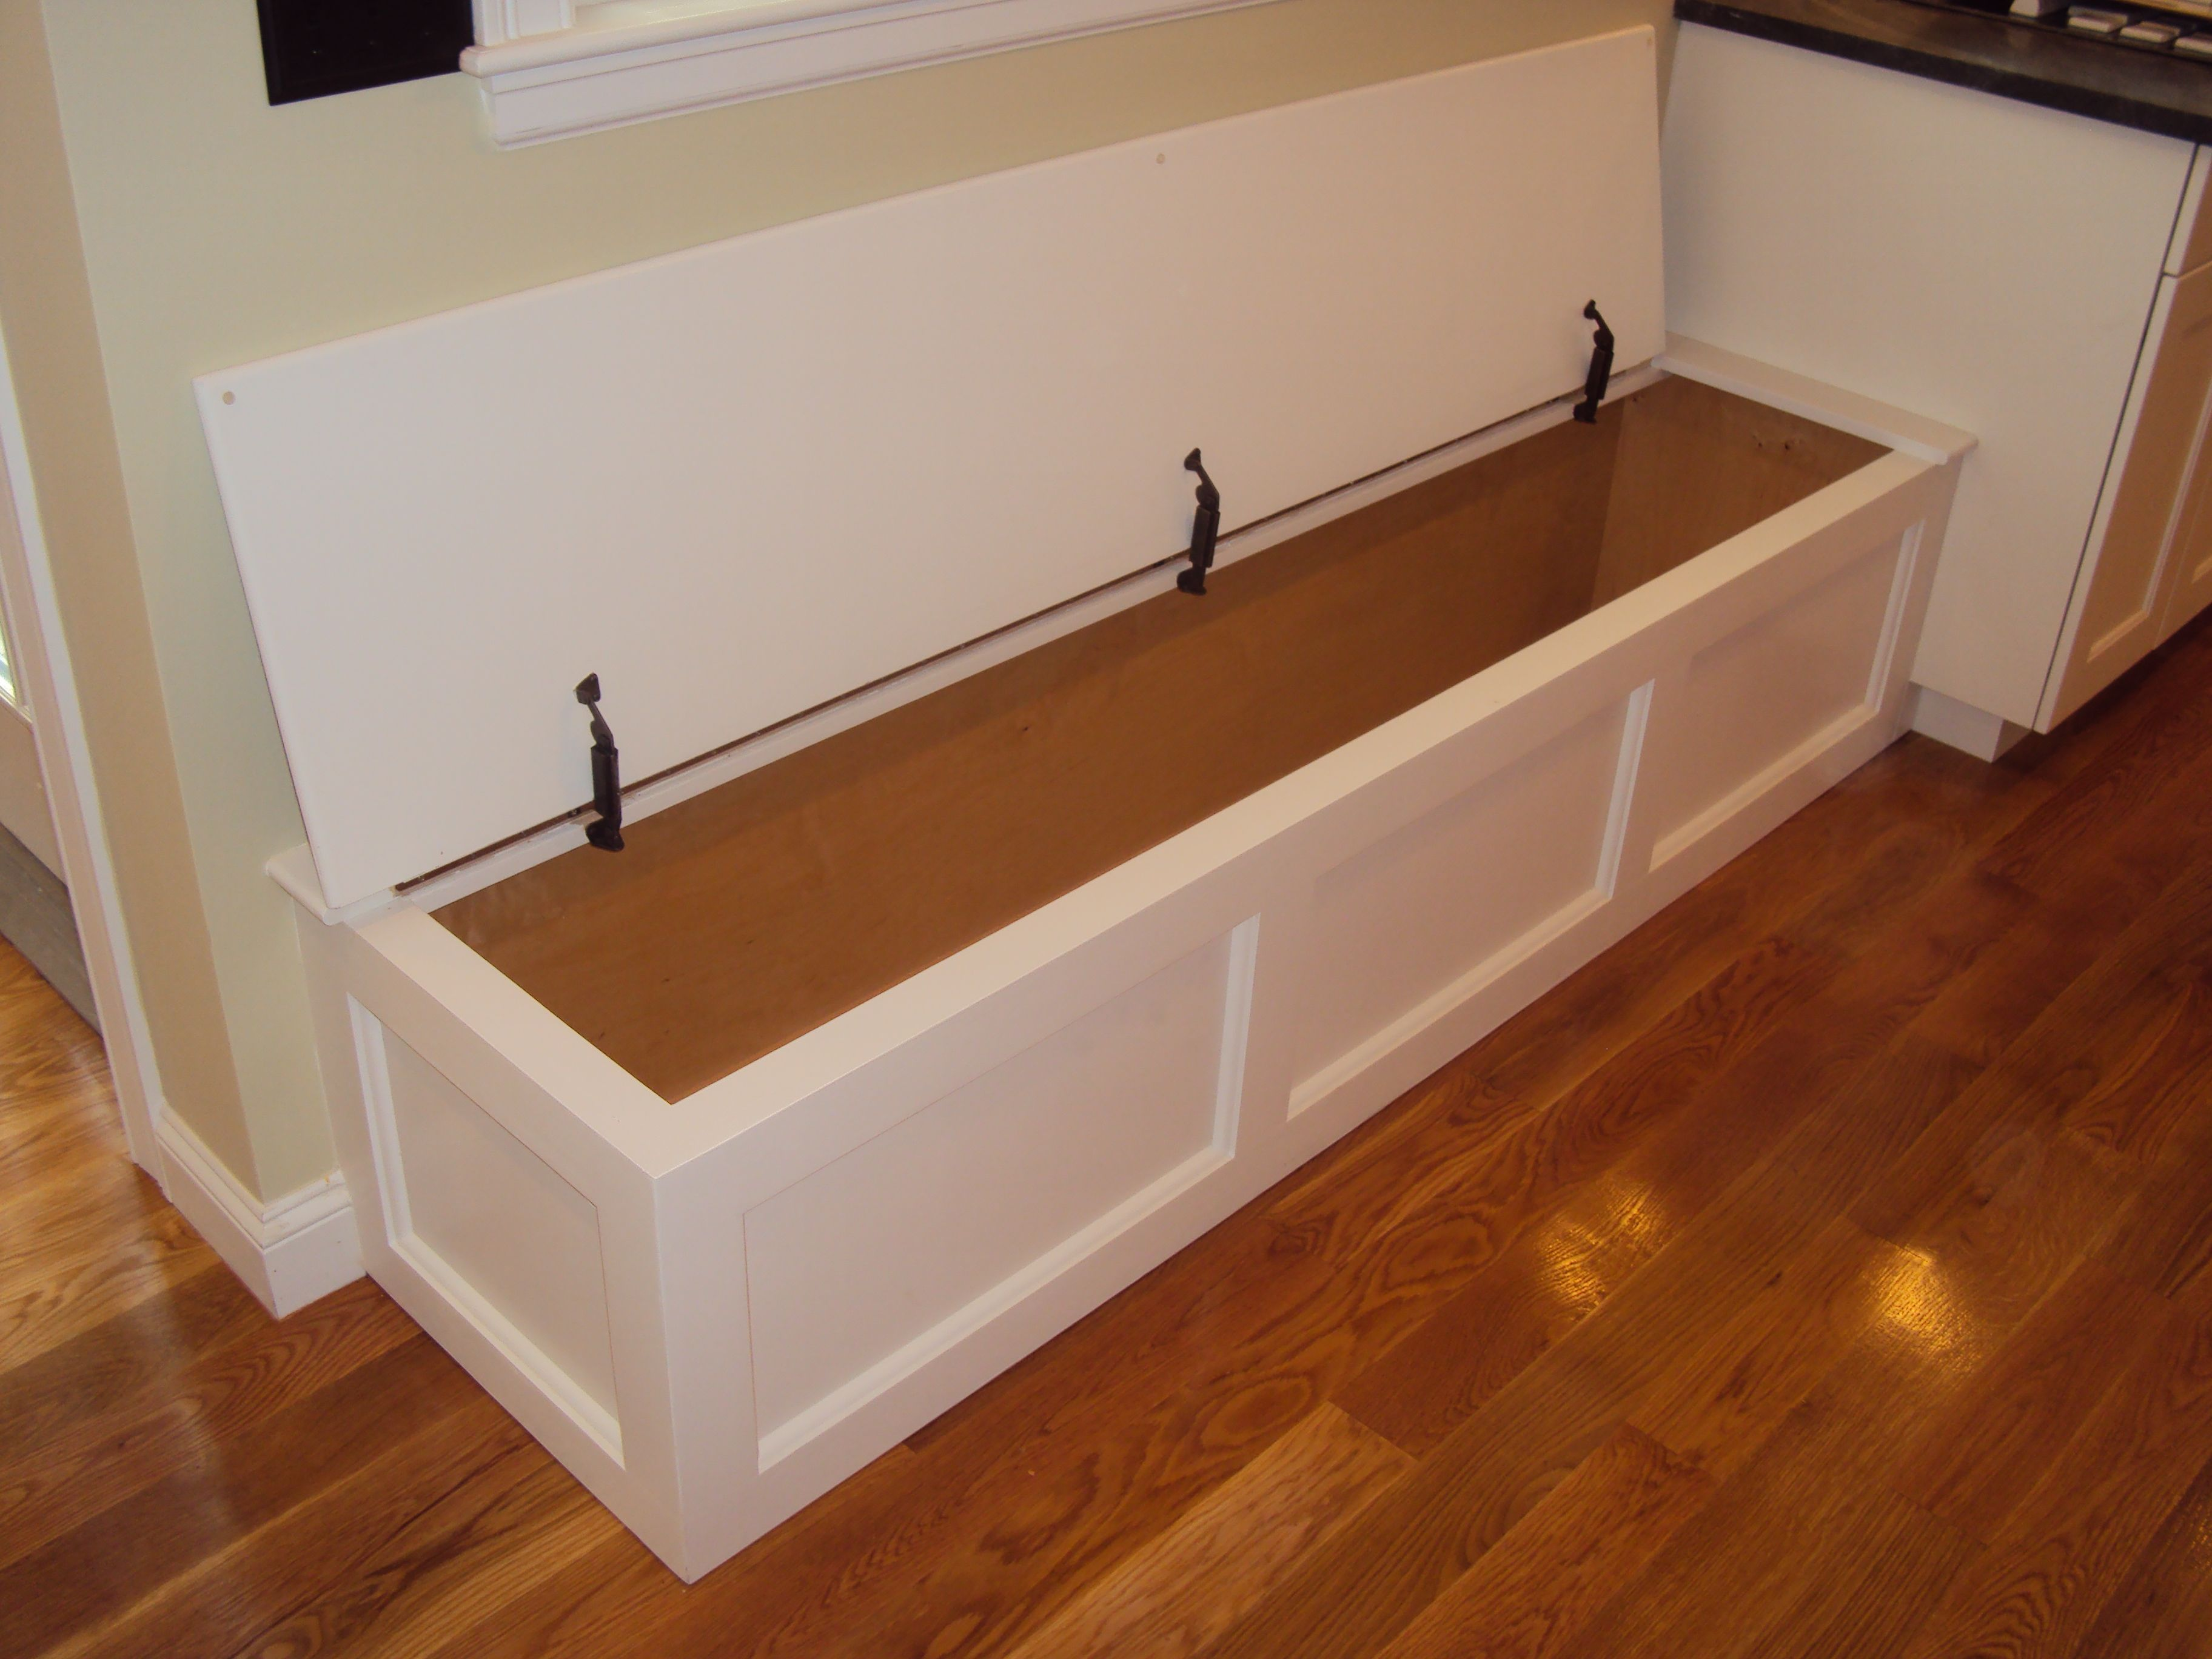 Kitchen Bench With Hinged Top Storage Wellesley Ma Built In Benches By Dishington Storage Bench Seating Kitchen Storage Bench Diy Storage Bench